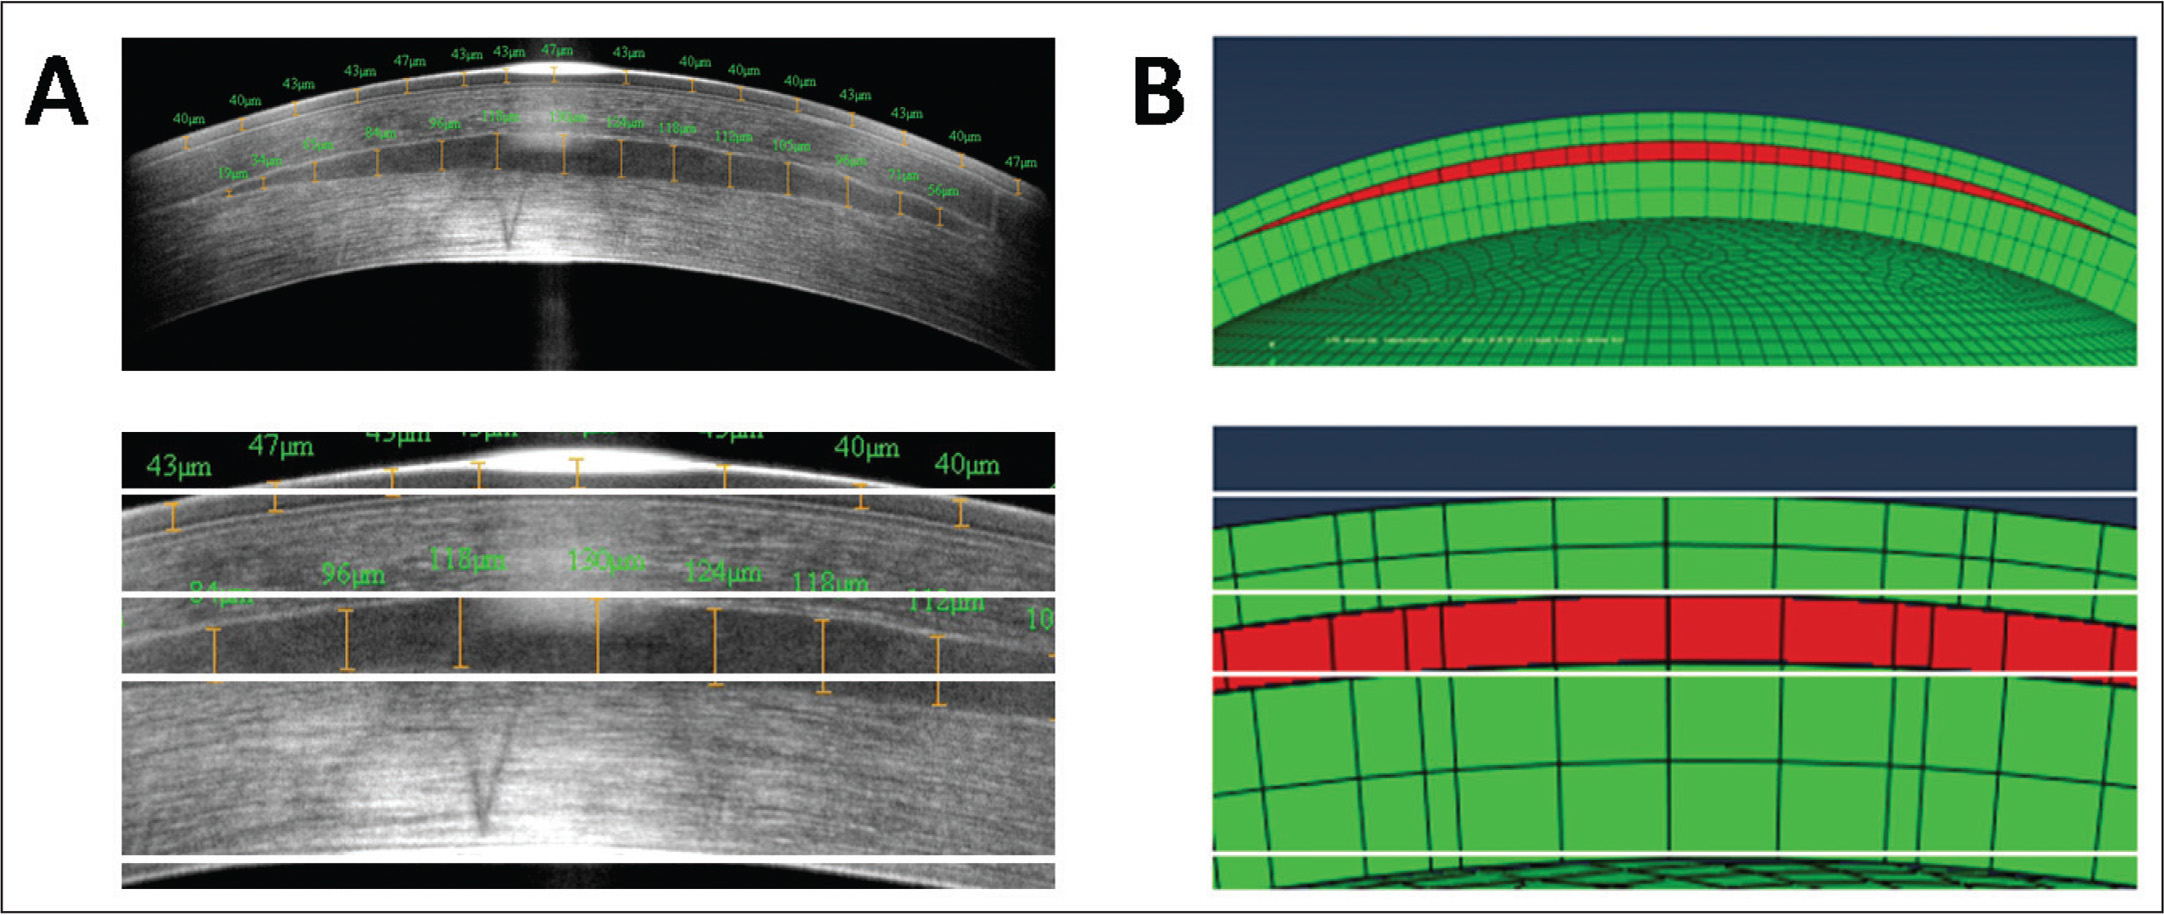 (A) Optical coherence tomography (RTVue OCT; Optovue Inc., Fremont, CA) measurement 6 months after endokeratophakia procedure. (B) Section of the biomechanical model. The lenticule implant is shown in red. The lower figures are magnifications of the upper figures (original magnification ×3.5).